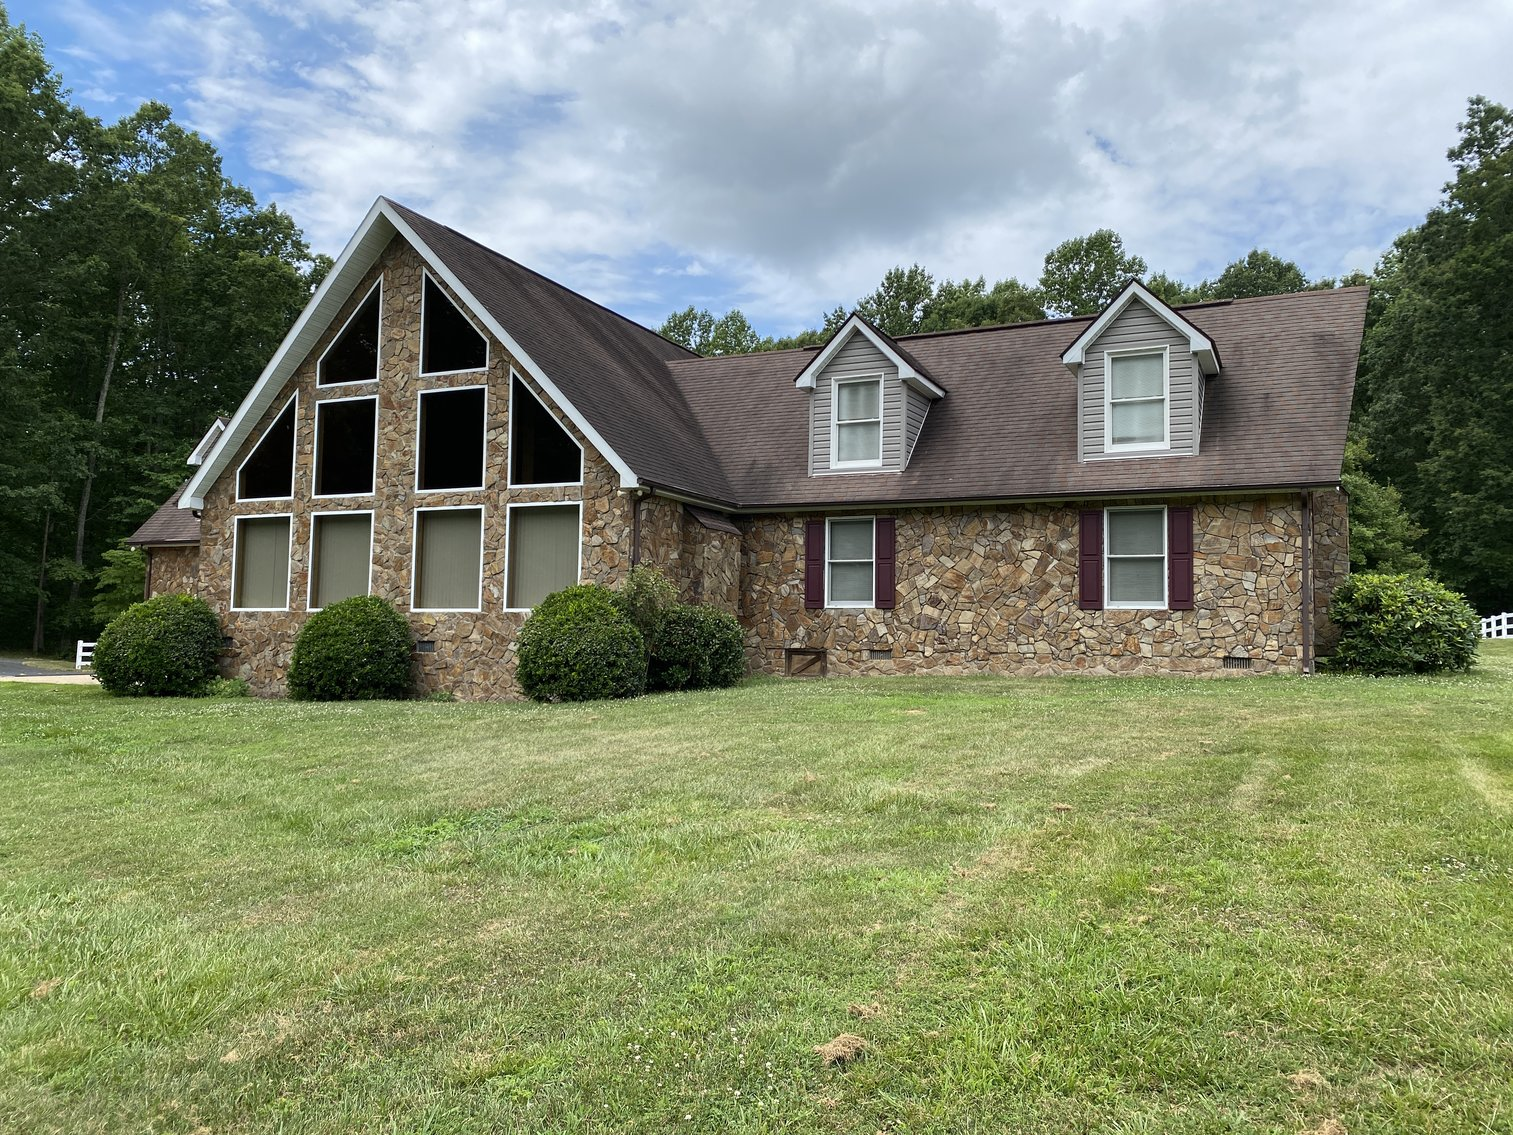 Image for 3 BR/5 BA Lake Anna Home on 1.4 +/- Acres w/40x60 Detached Building w/Office--Louisa County, VA